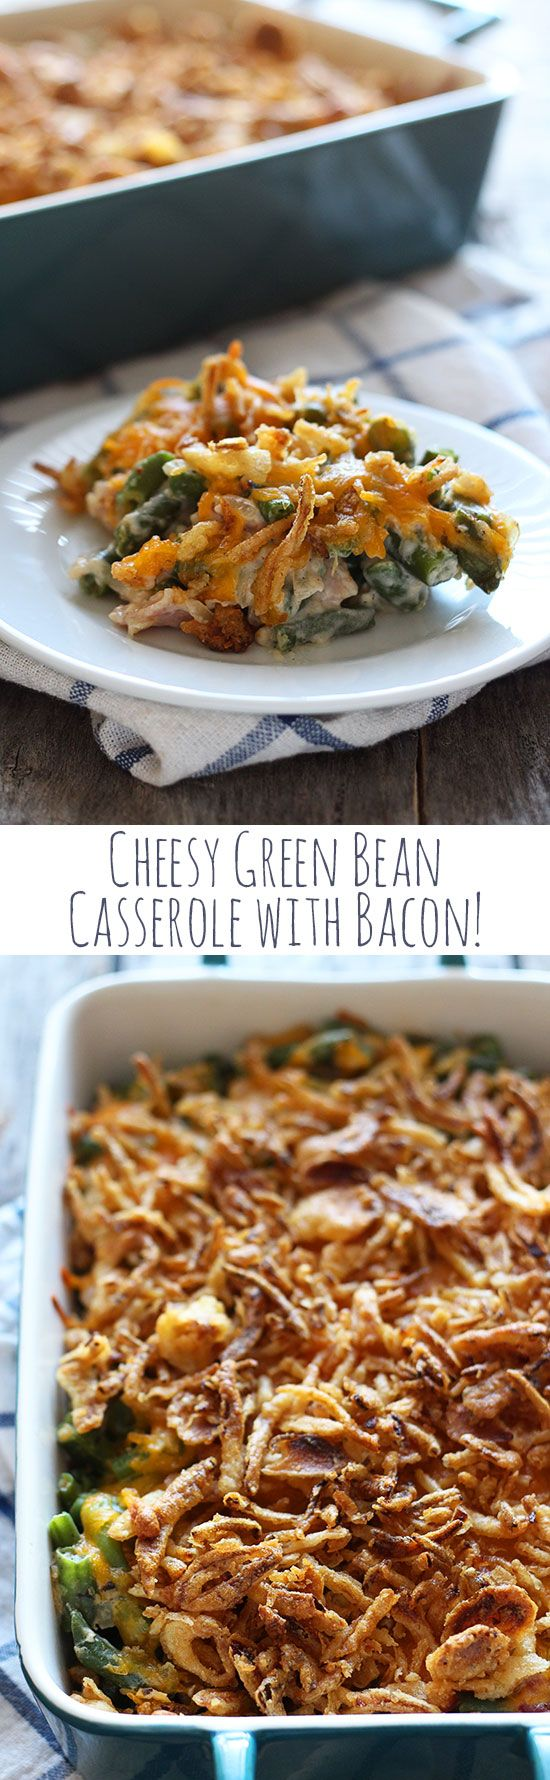 The BEST green bean casserole! Cheese + bacon = best Thanksgiving side dish ever!